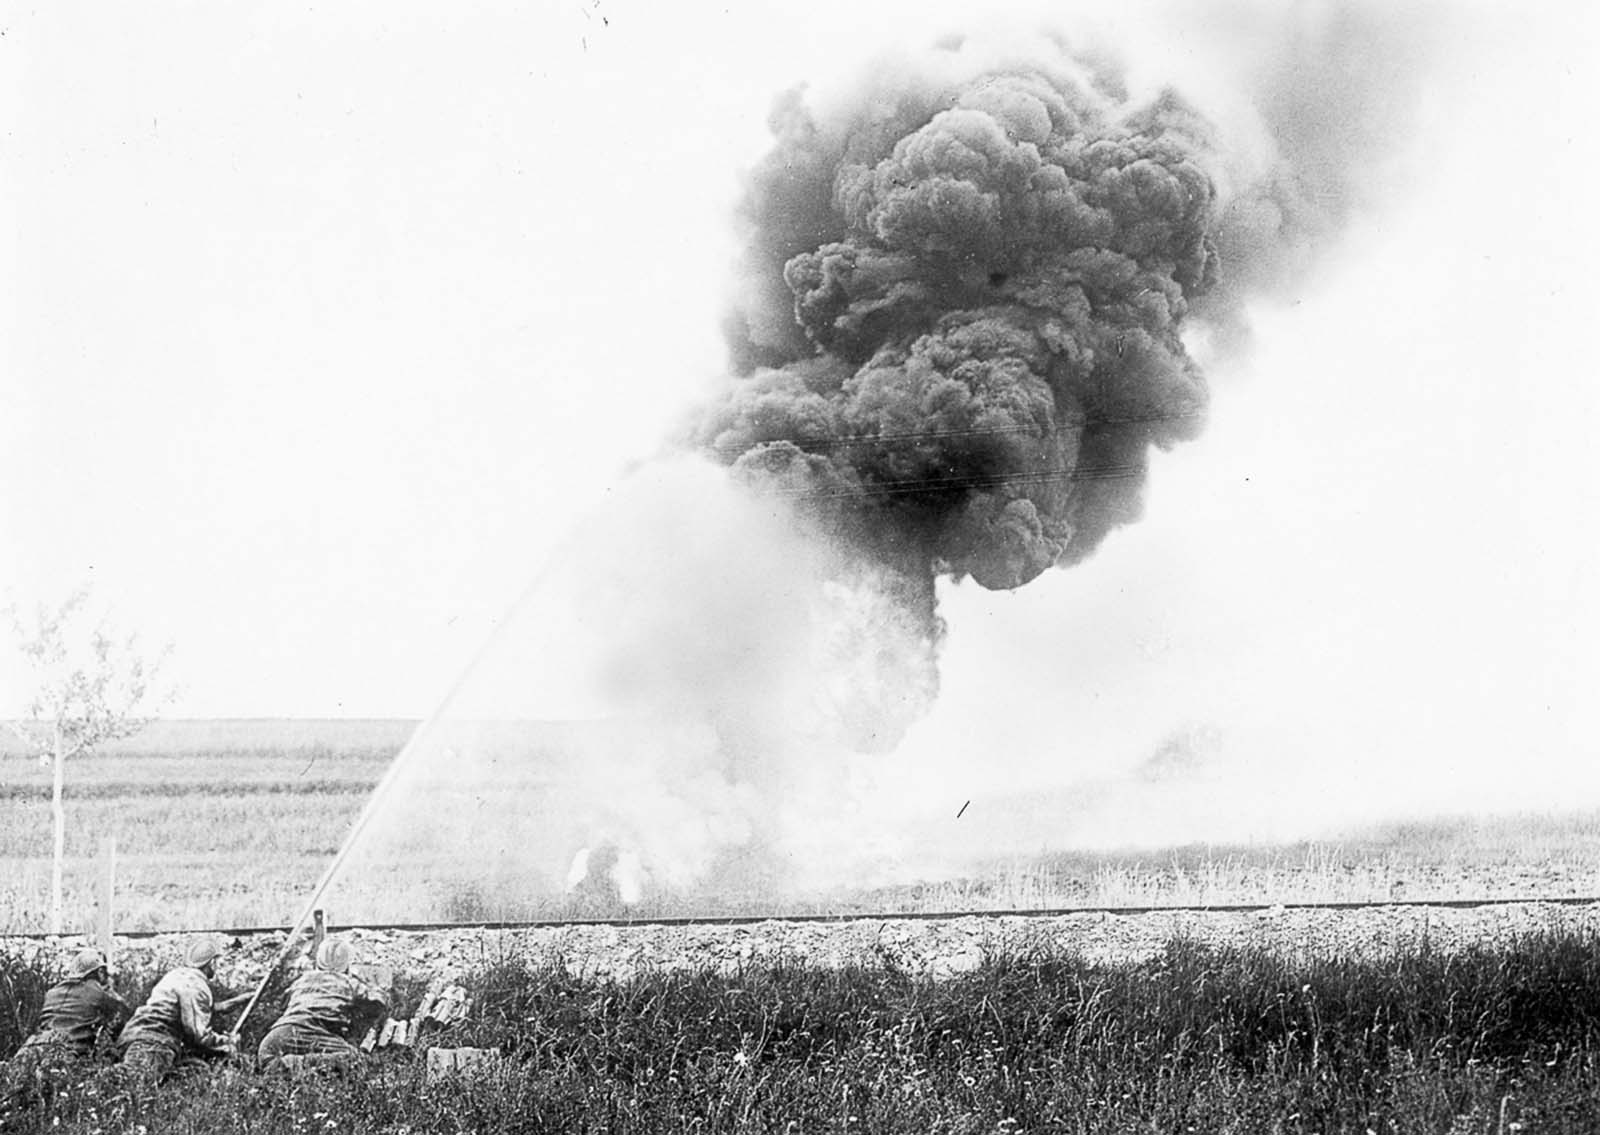 French forces use a flamethrower against German forces. 1915.